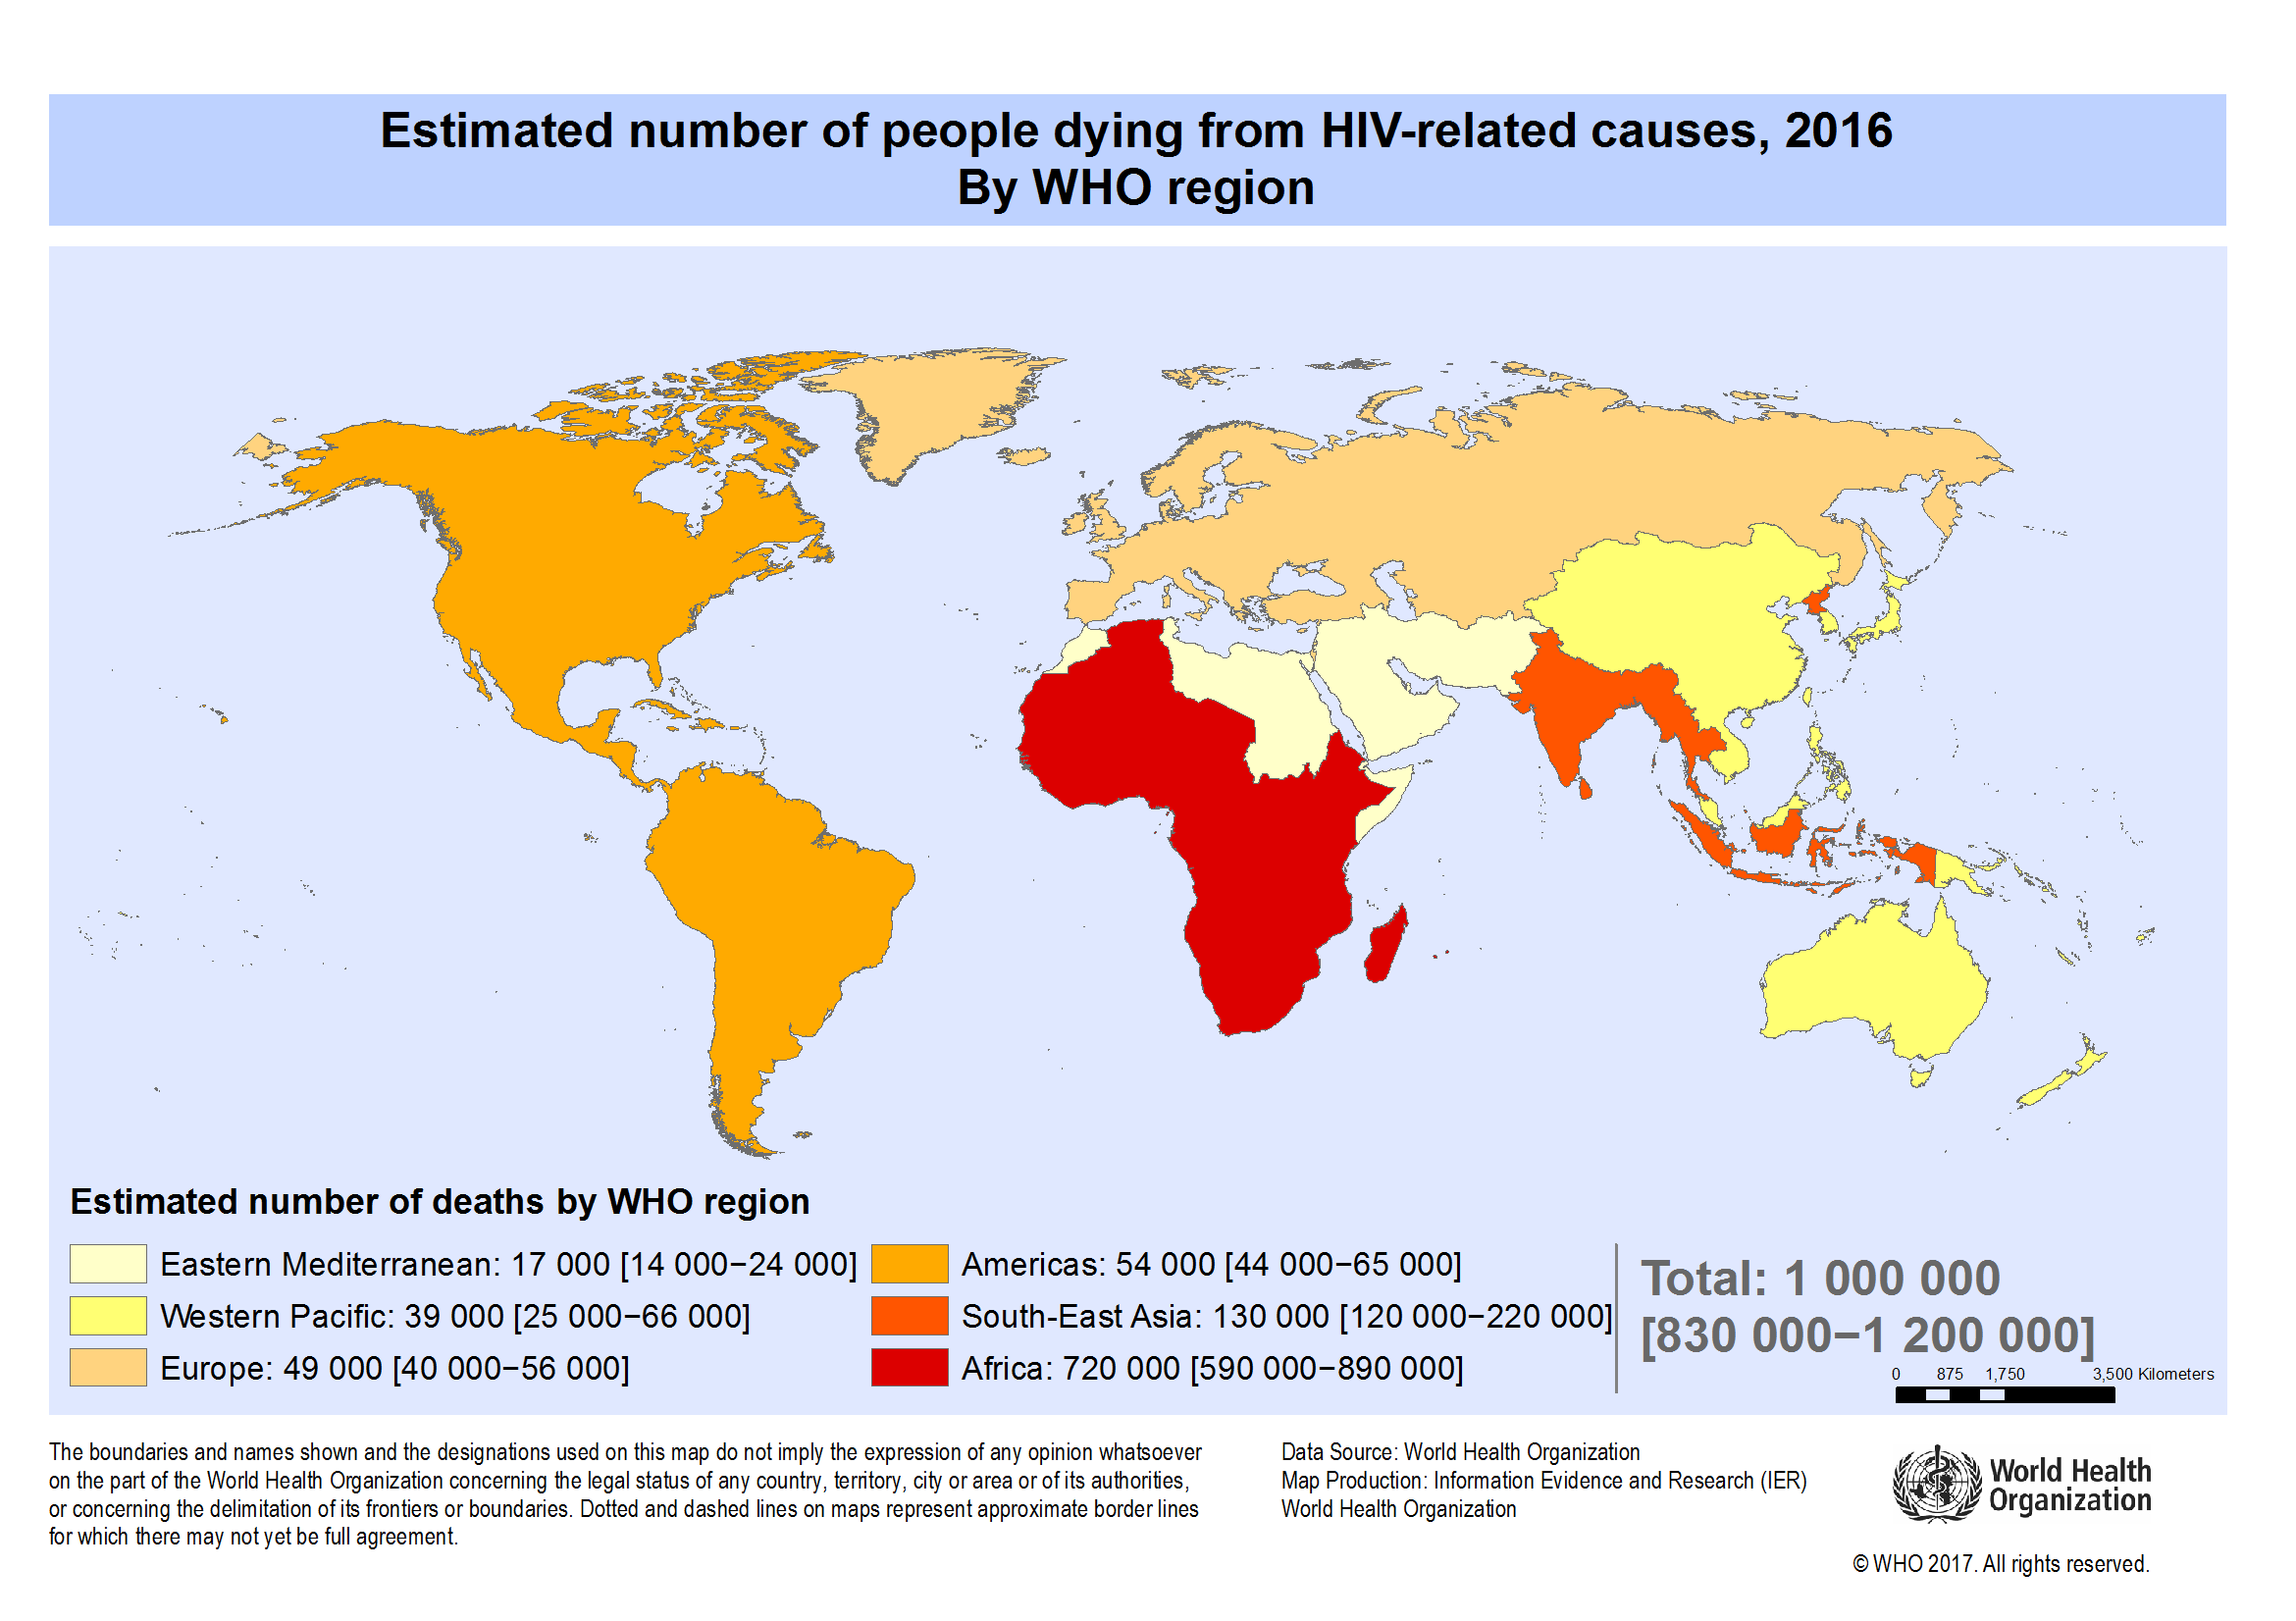 WHO | Global Health Observatory | Map Gallery